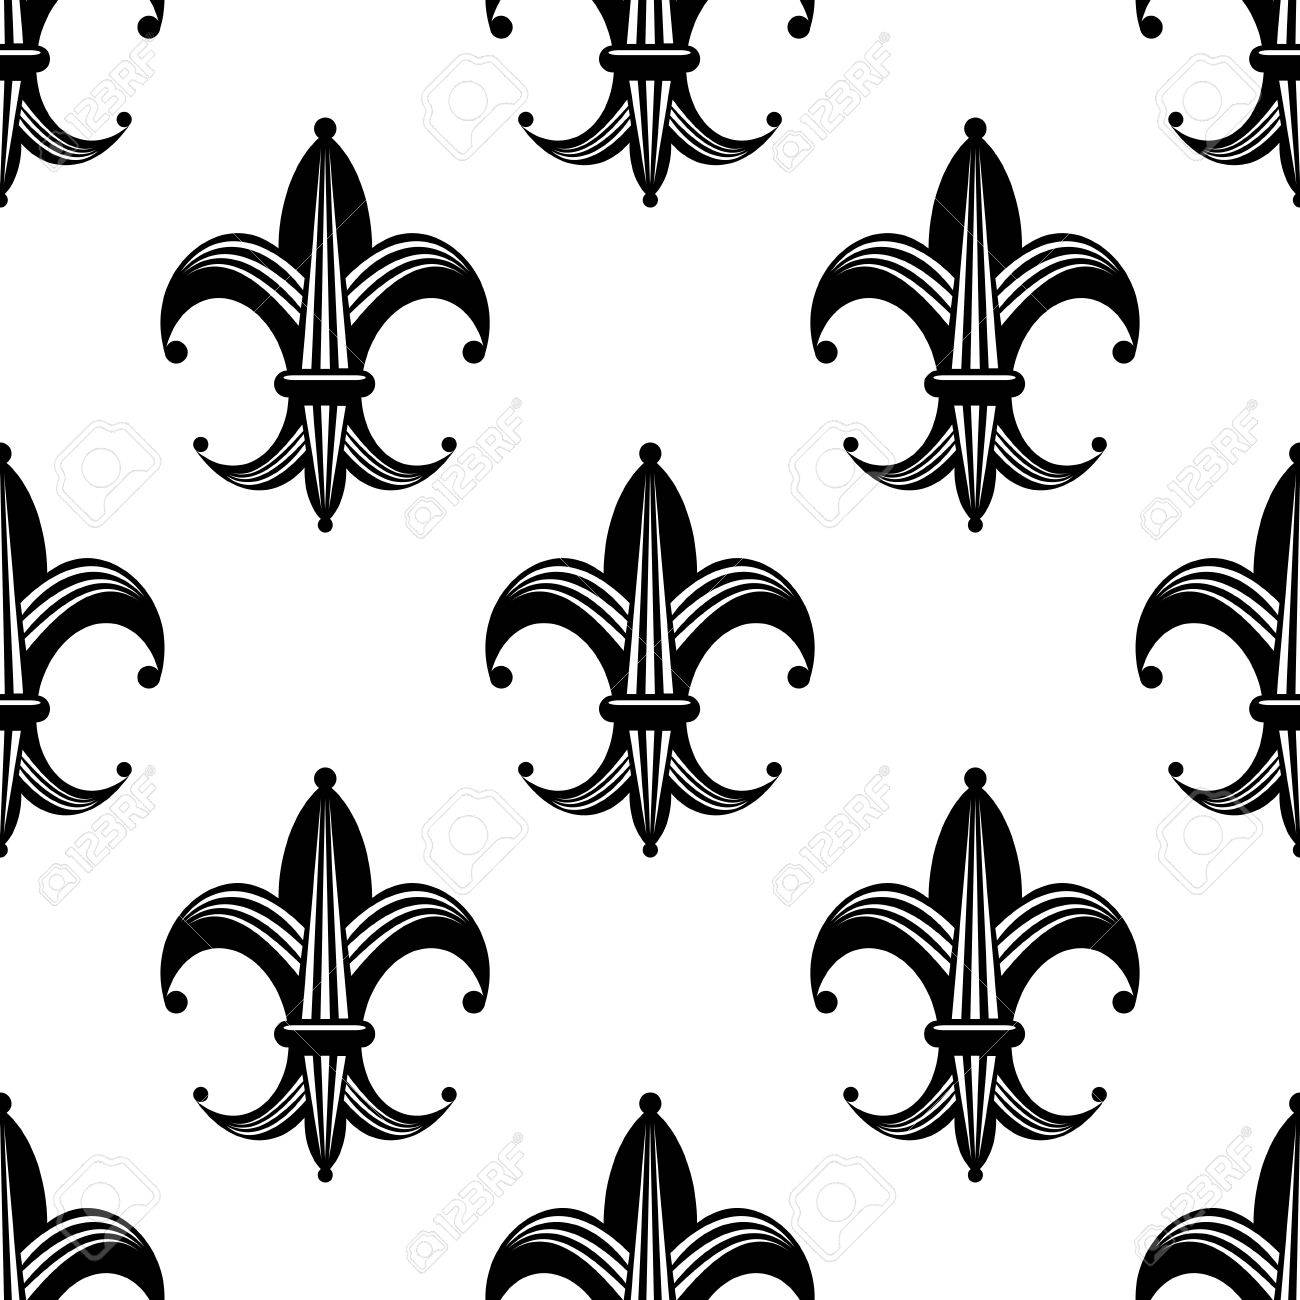 seamless bold stylized fleur de lys pattern with a repeat black